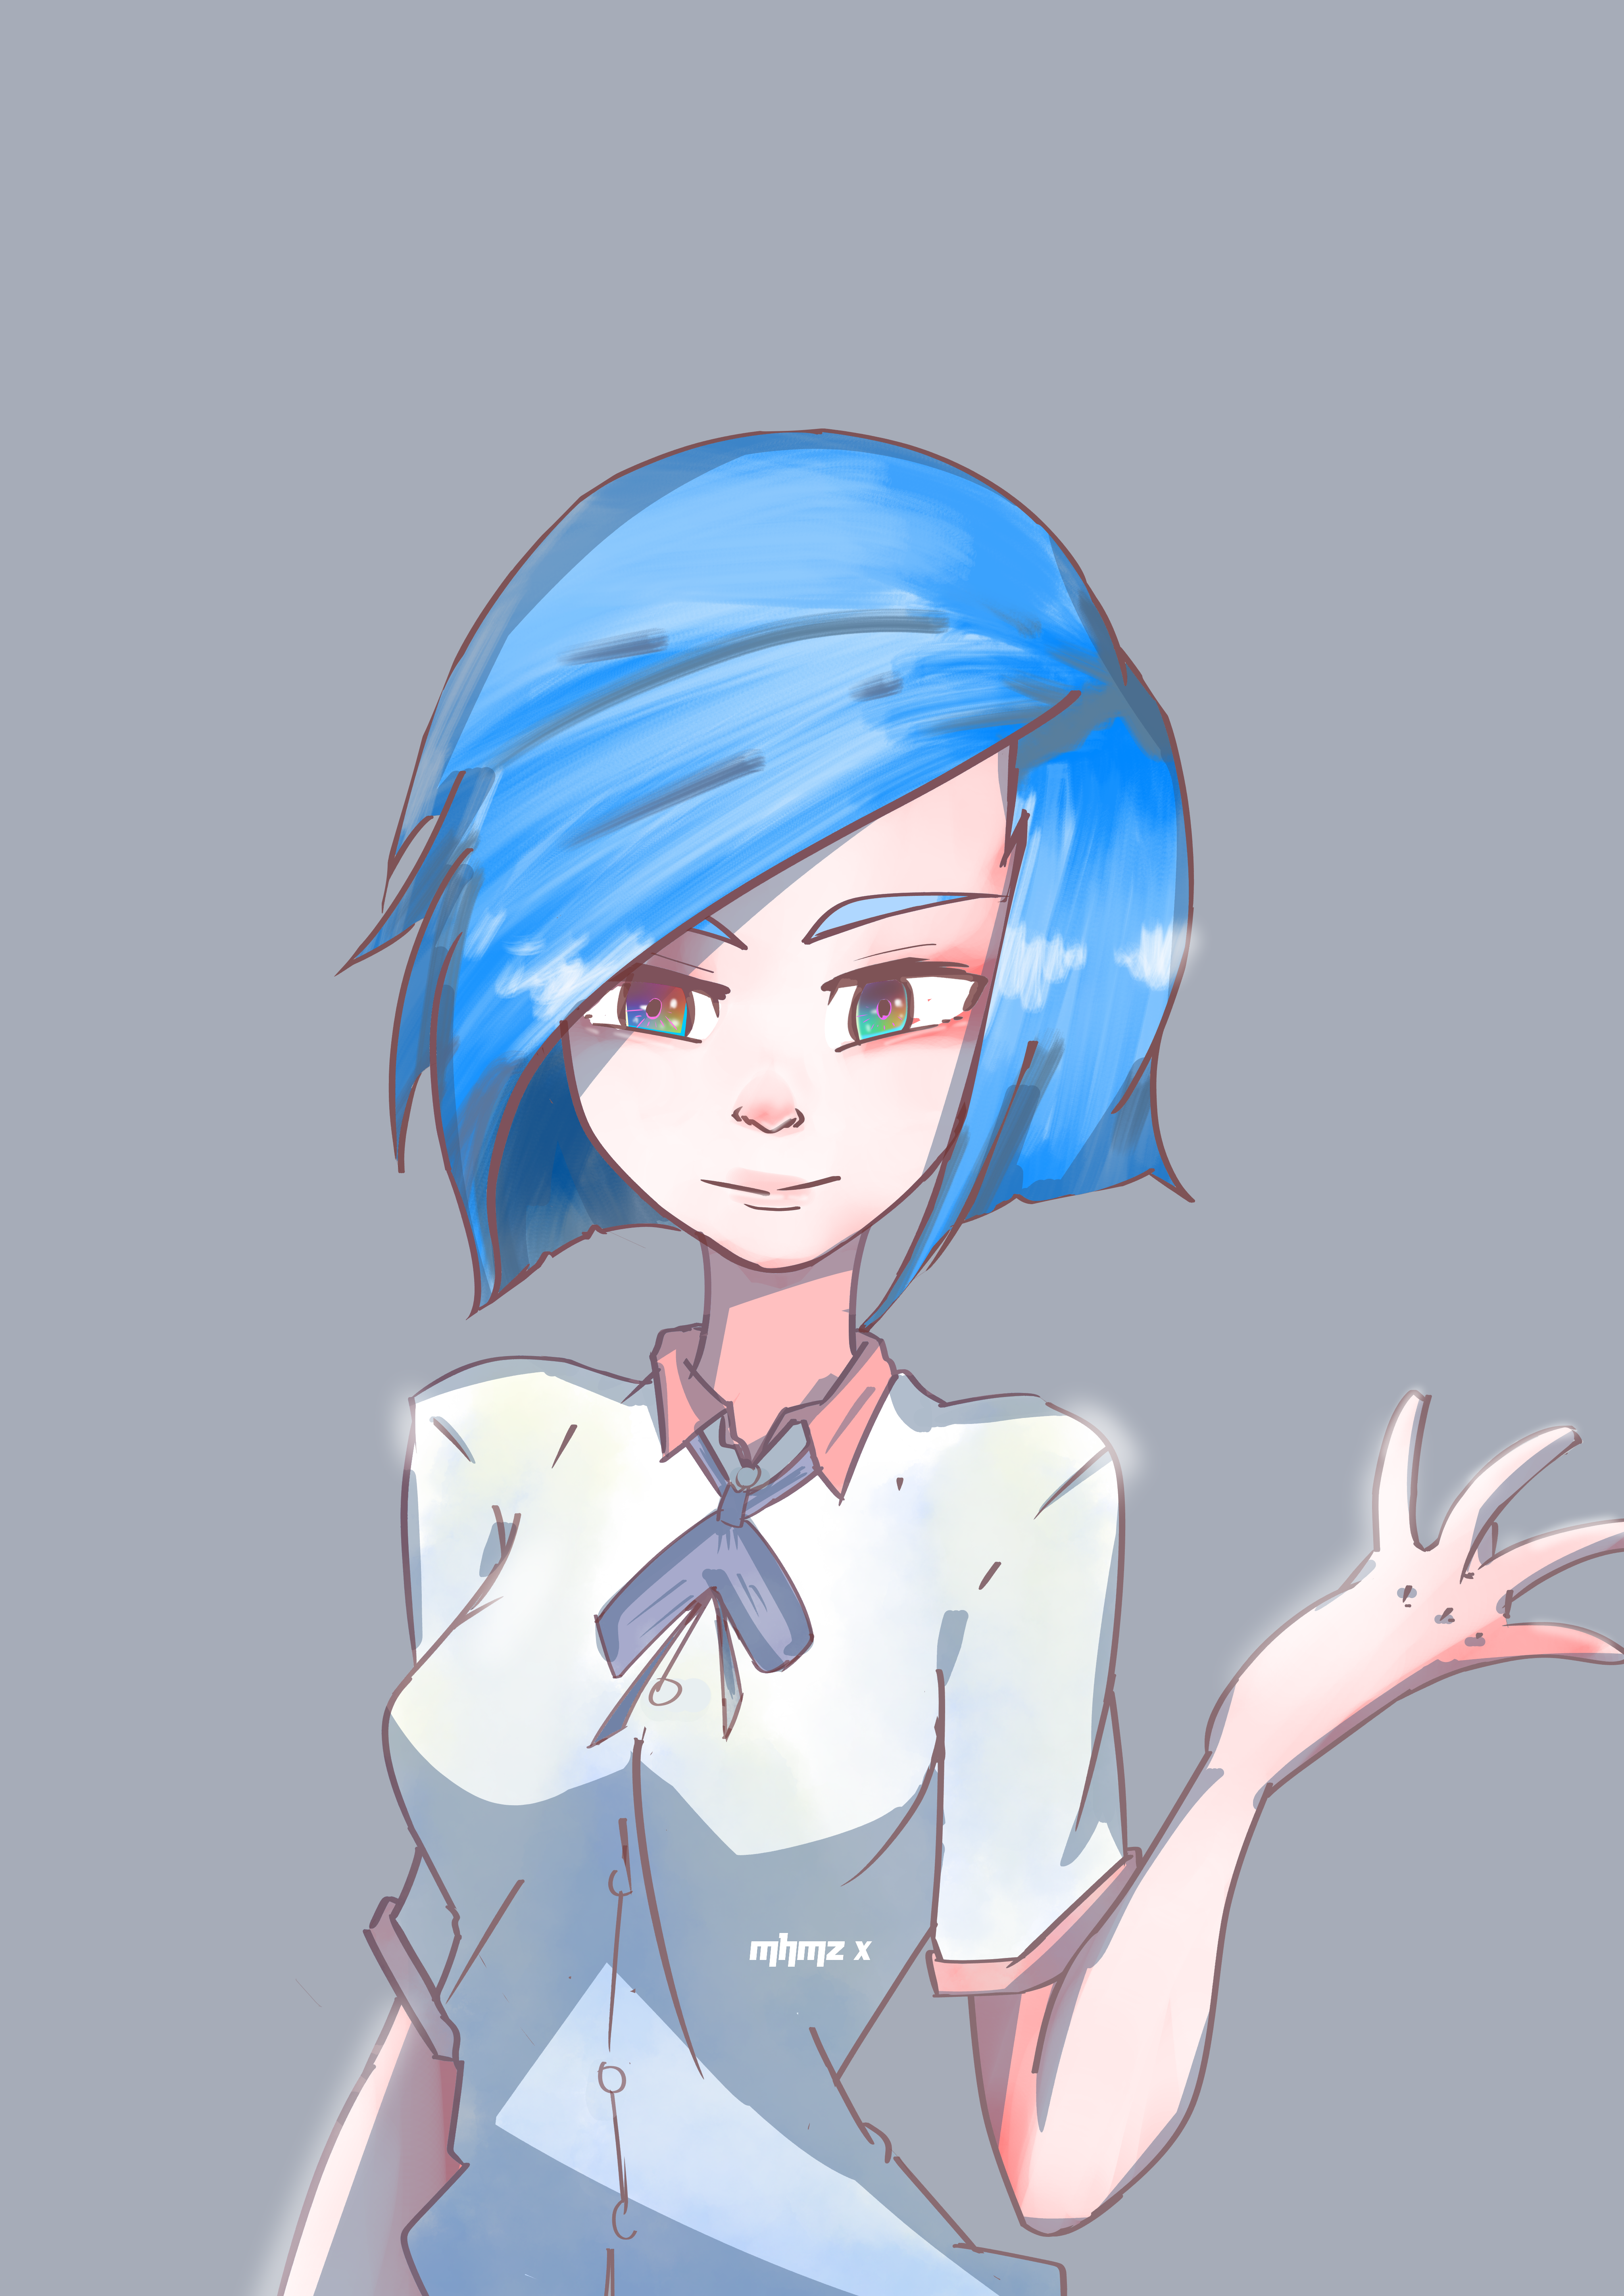 Cool Girl Short Hair Draw Girl By Mhmzx On Deviantart